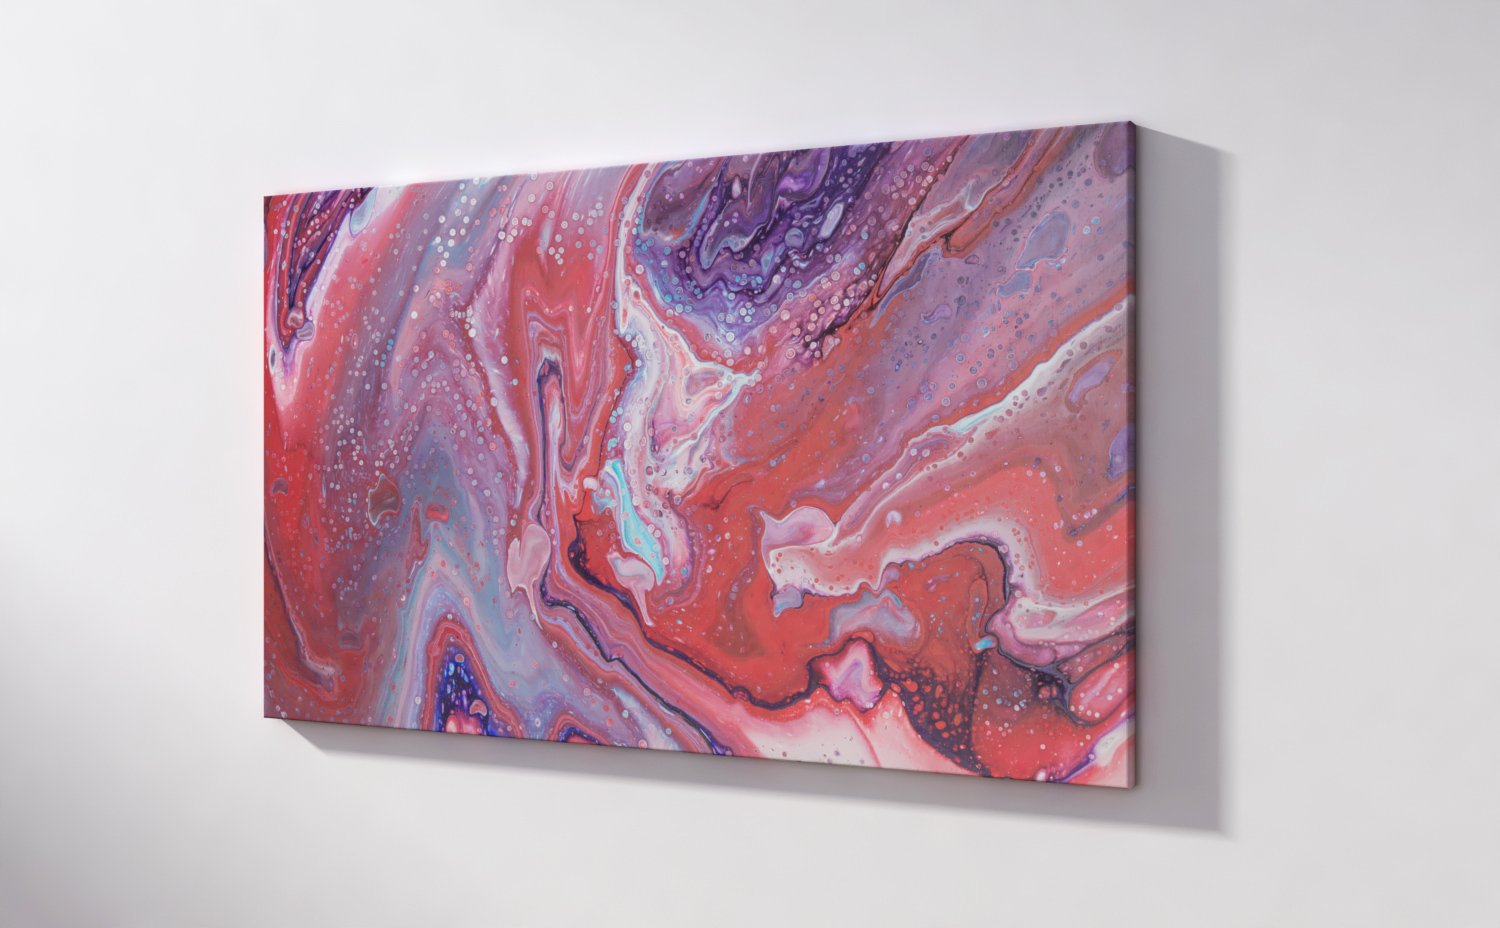 Abstract Art First date on canvas